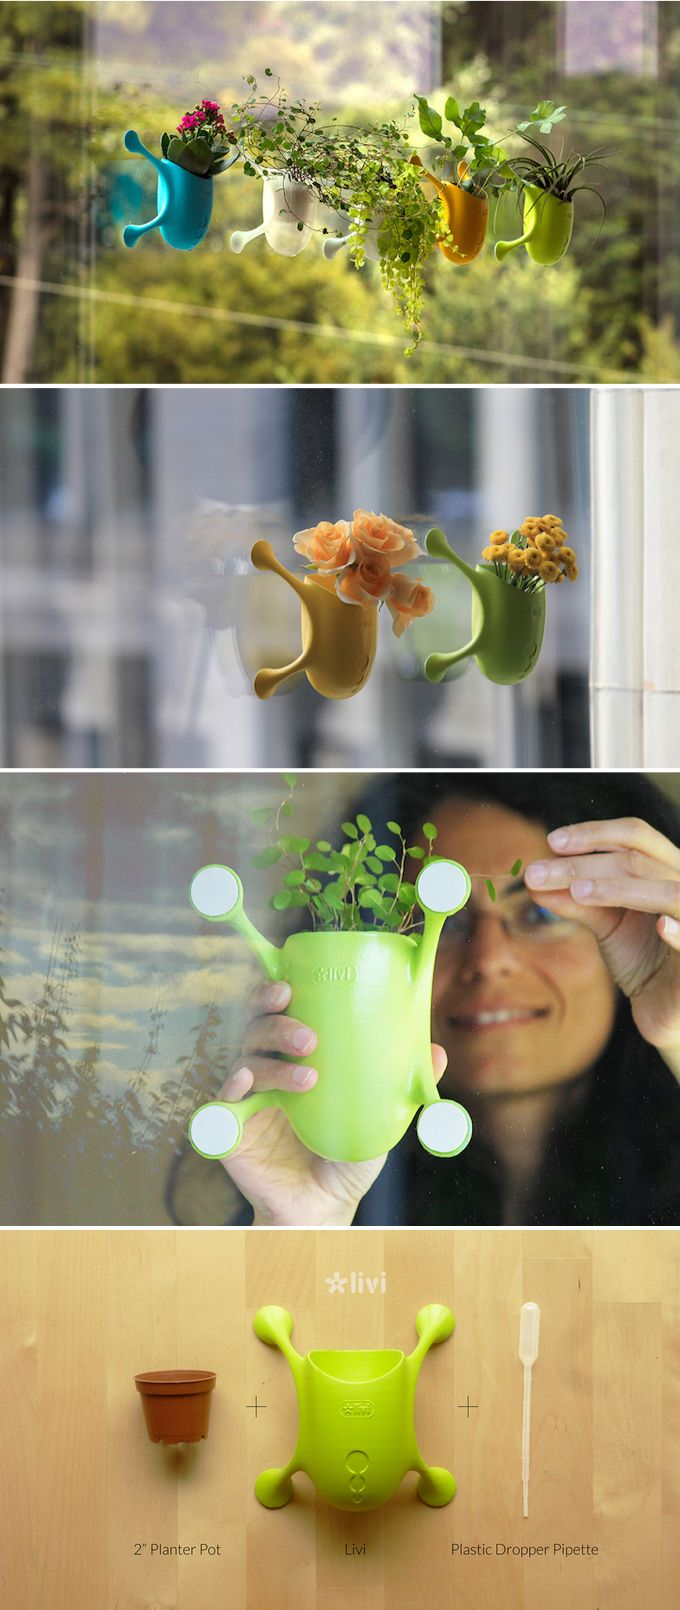 Livi uses 3D printing technology and recycled materials to produce a colorful planter with…